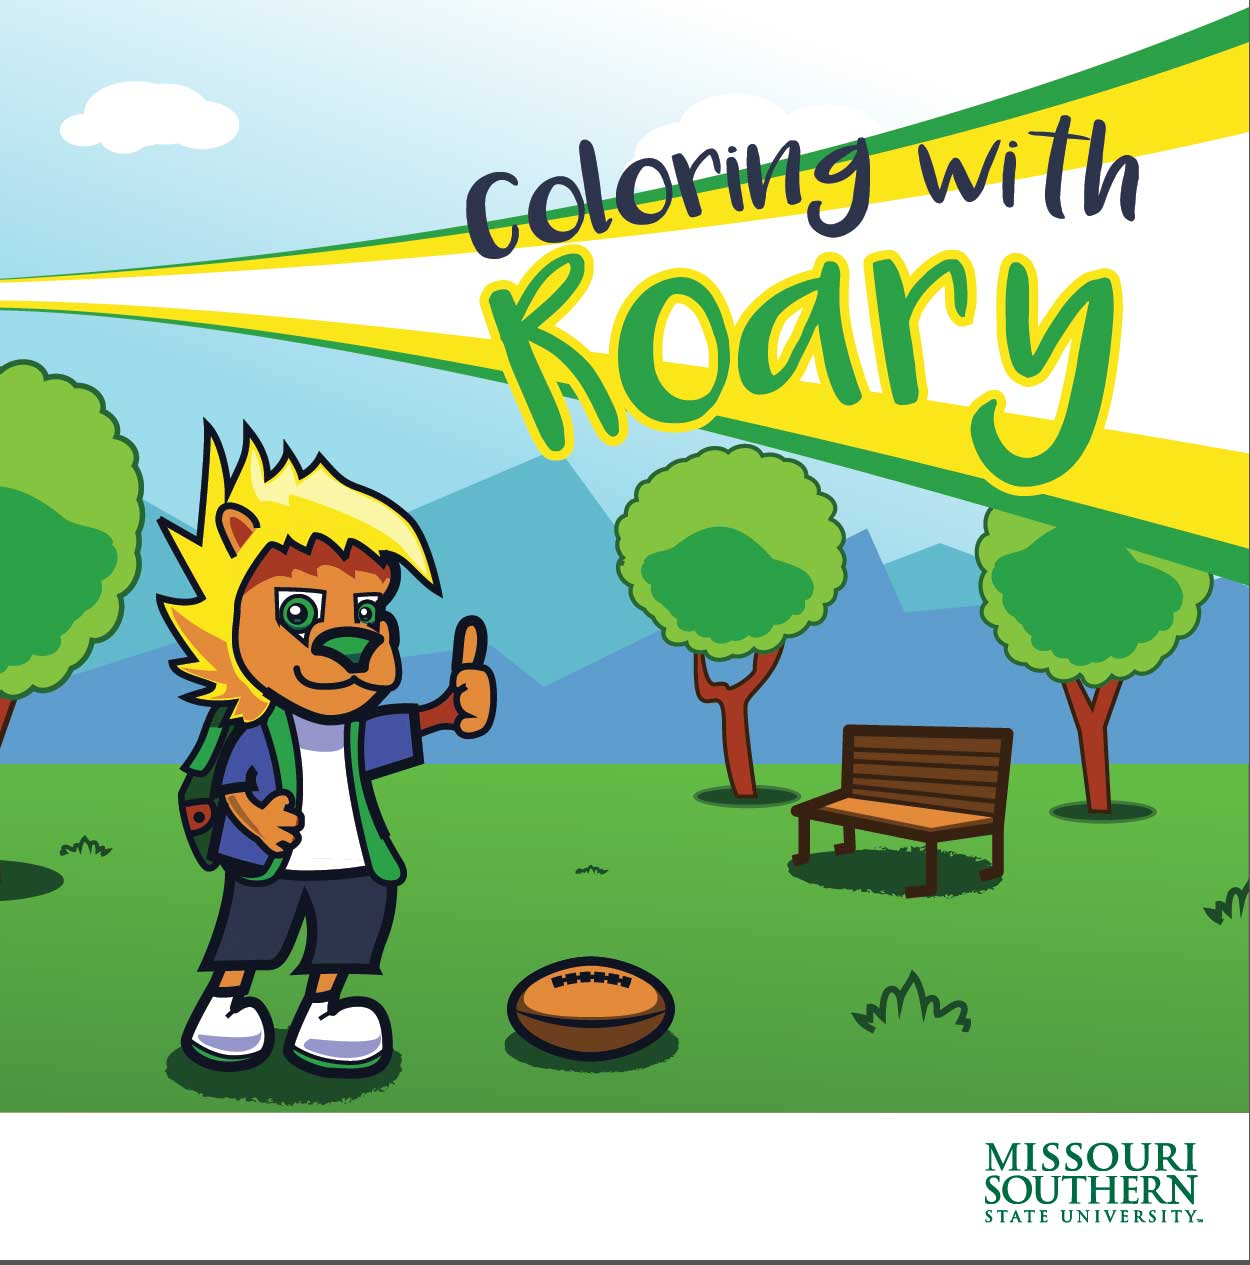 University mascot takes center stage in 'Coloring with Roary'